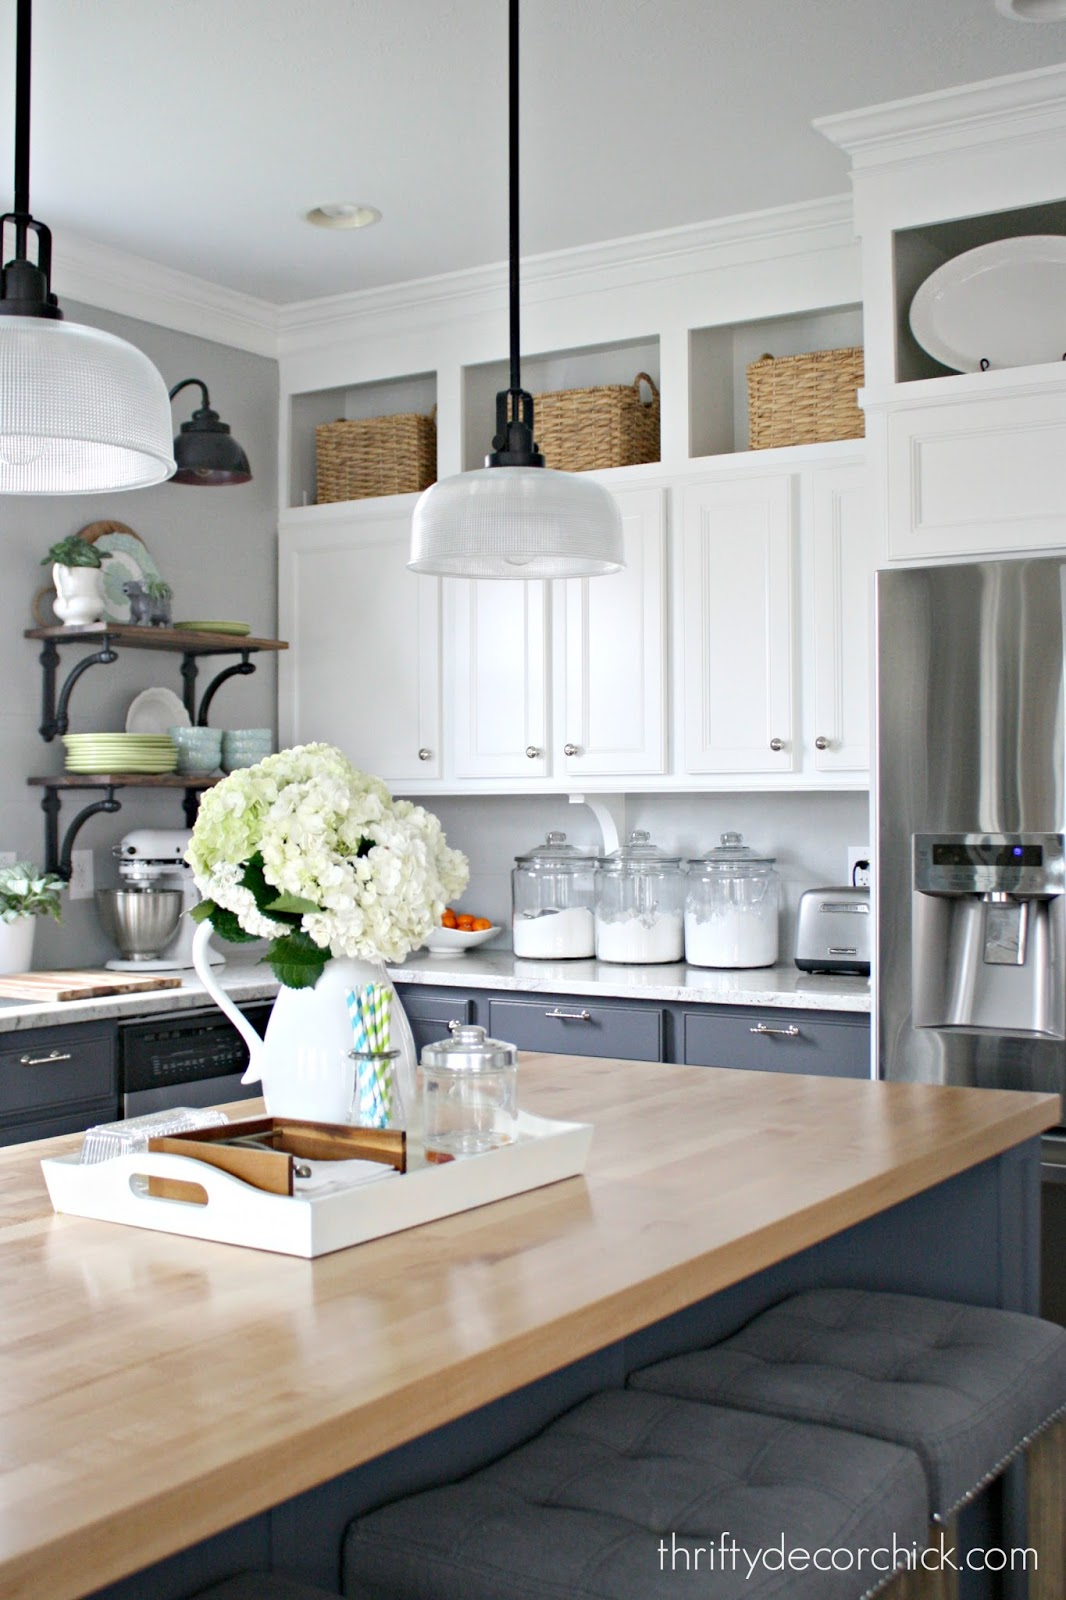 Diy Extend Kitchen Cabinets How Our Diy Kitchen Renovation Is Holding Up 1 1 2 Years